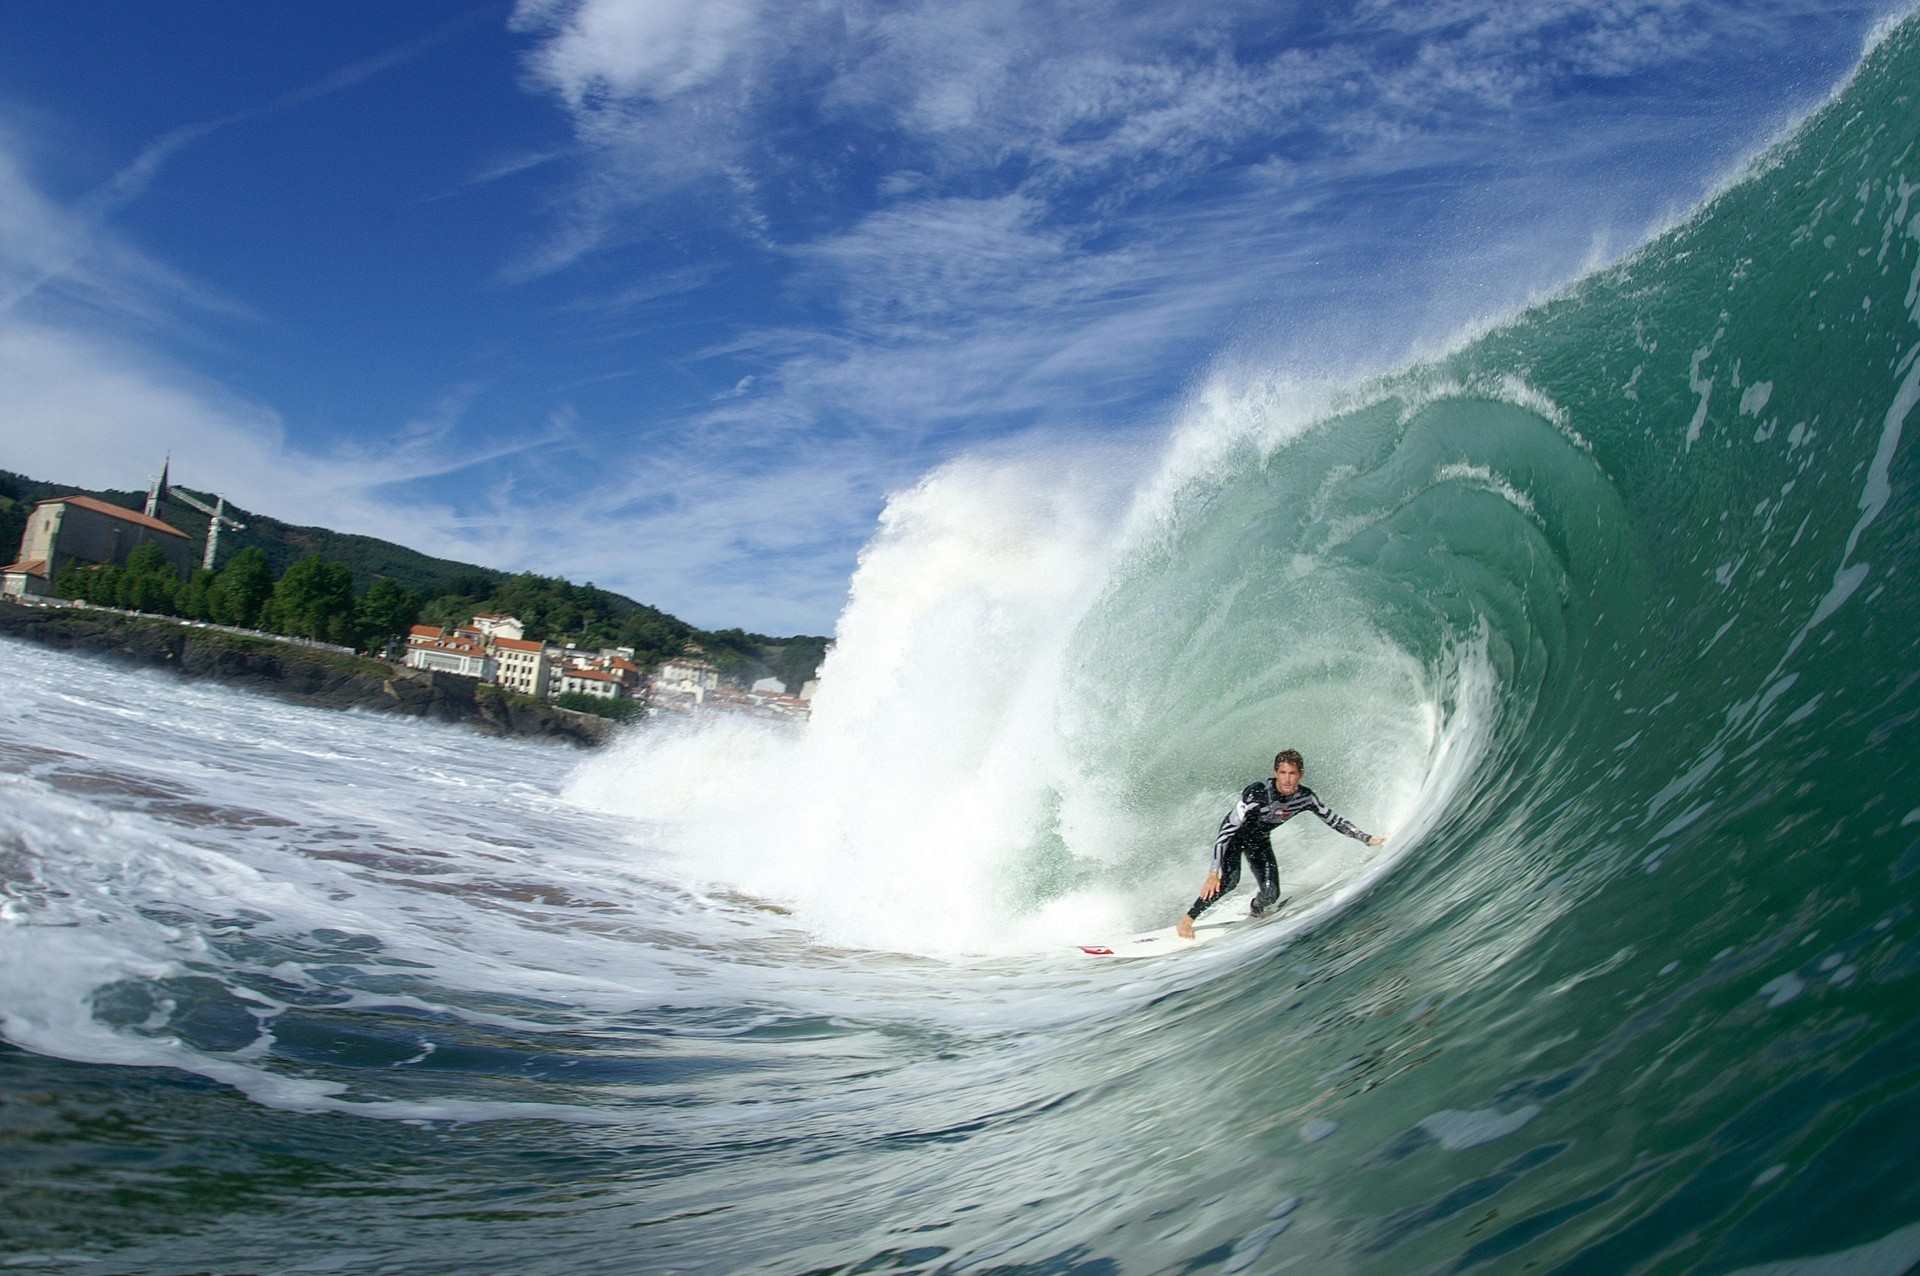 Cedric de Barros's photo of Mundaka